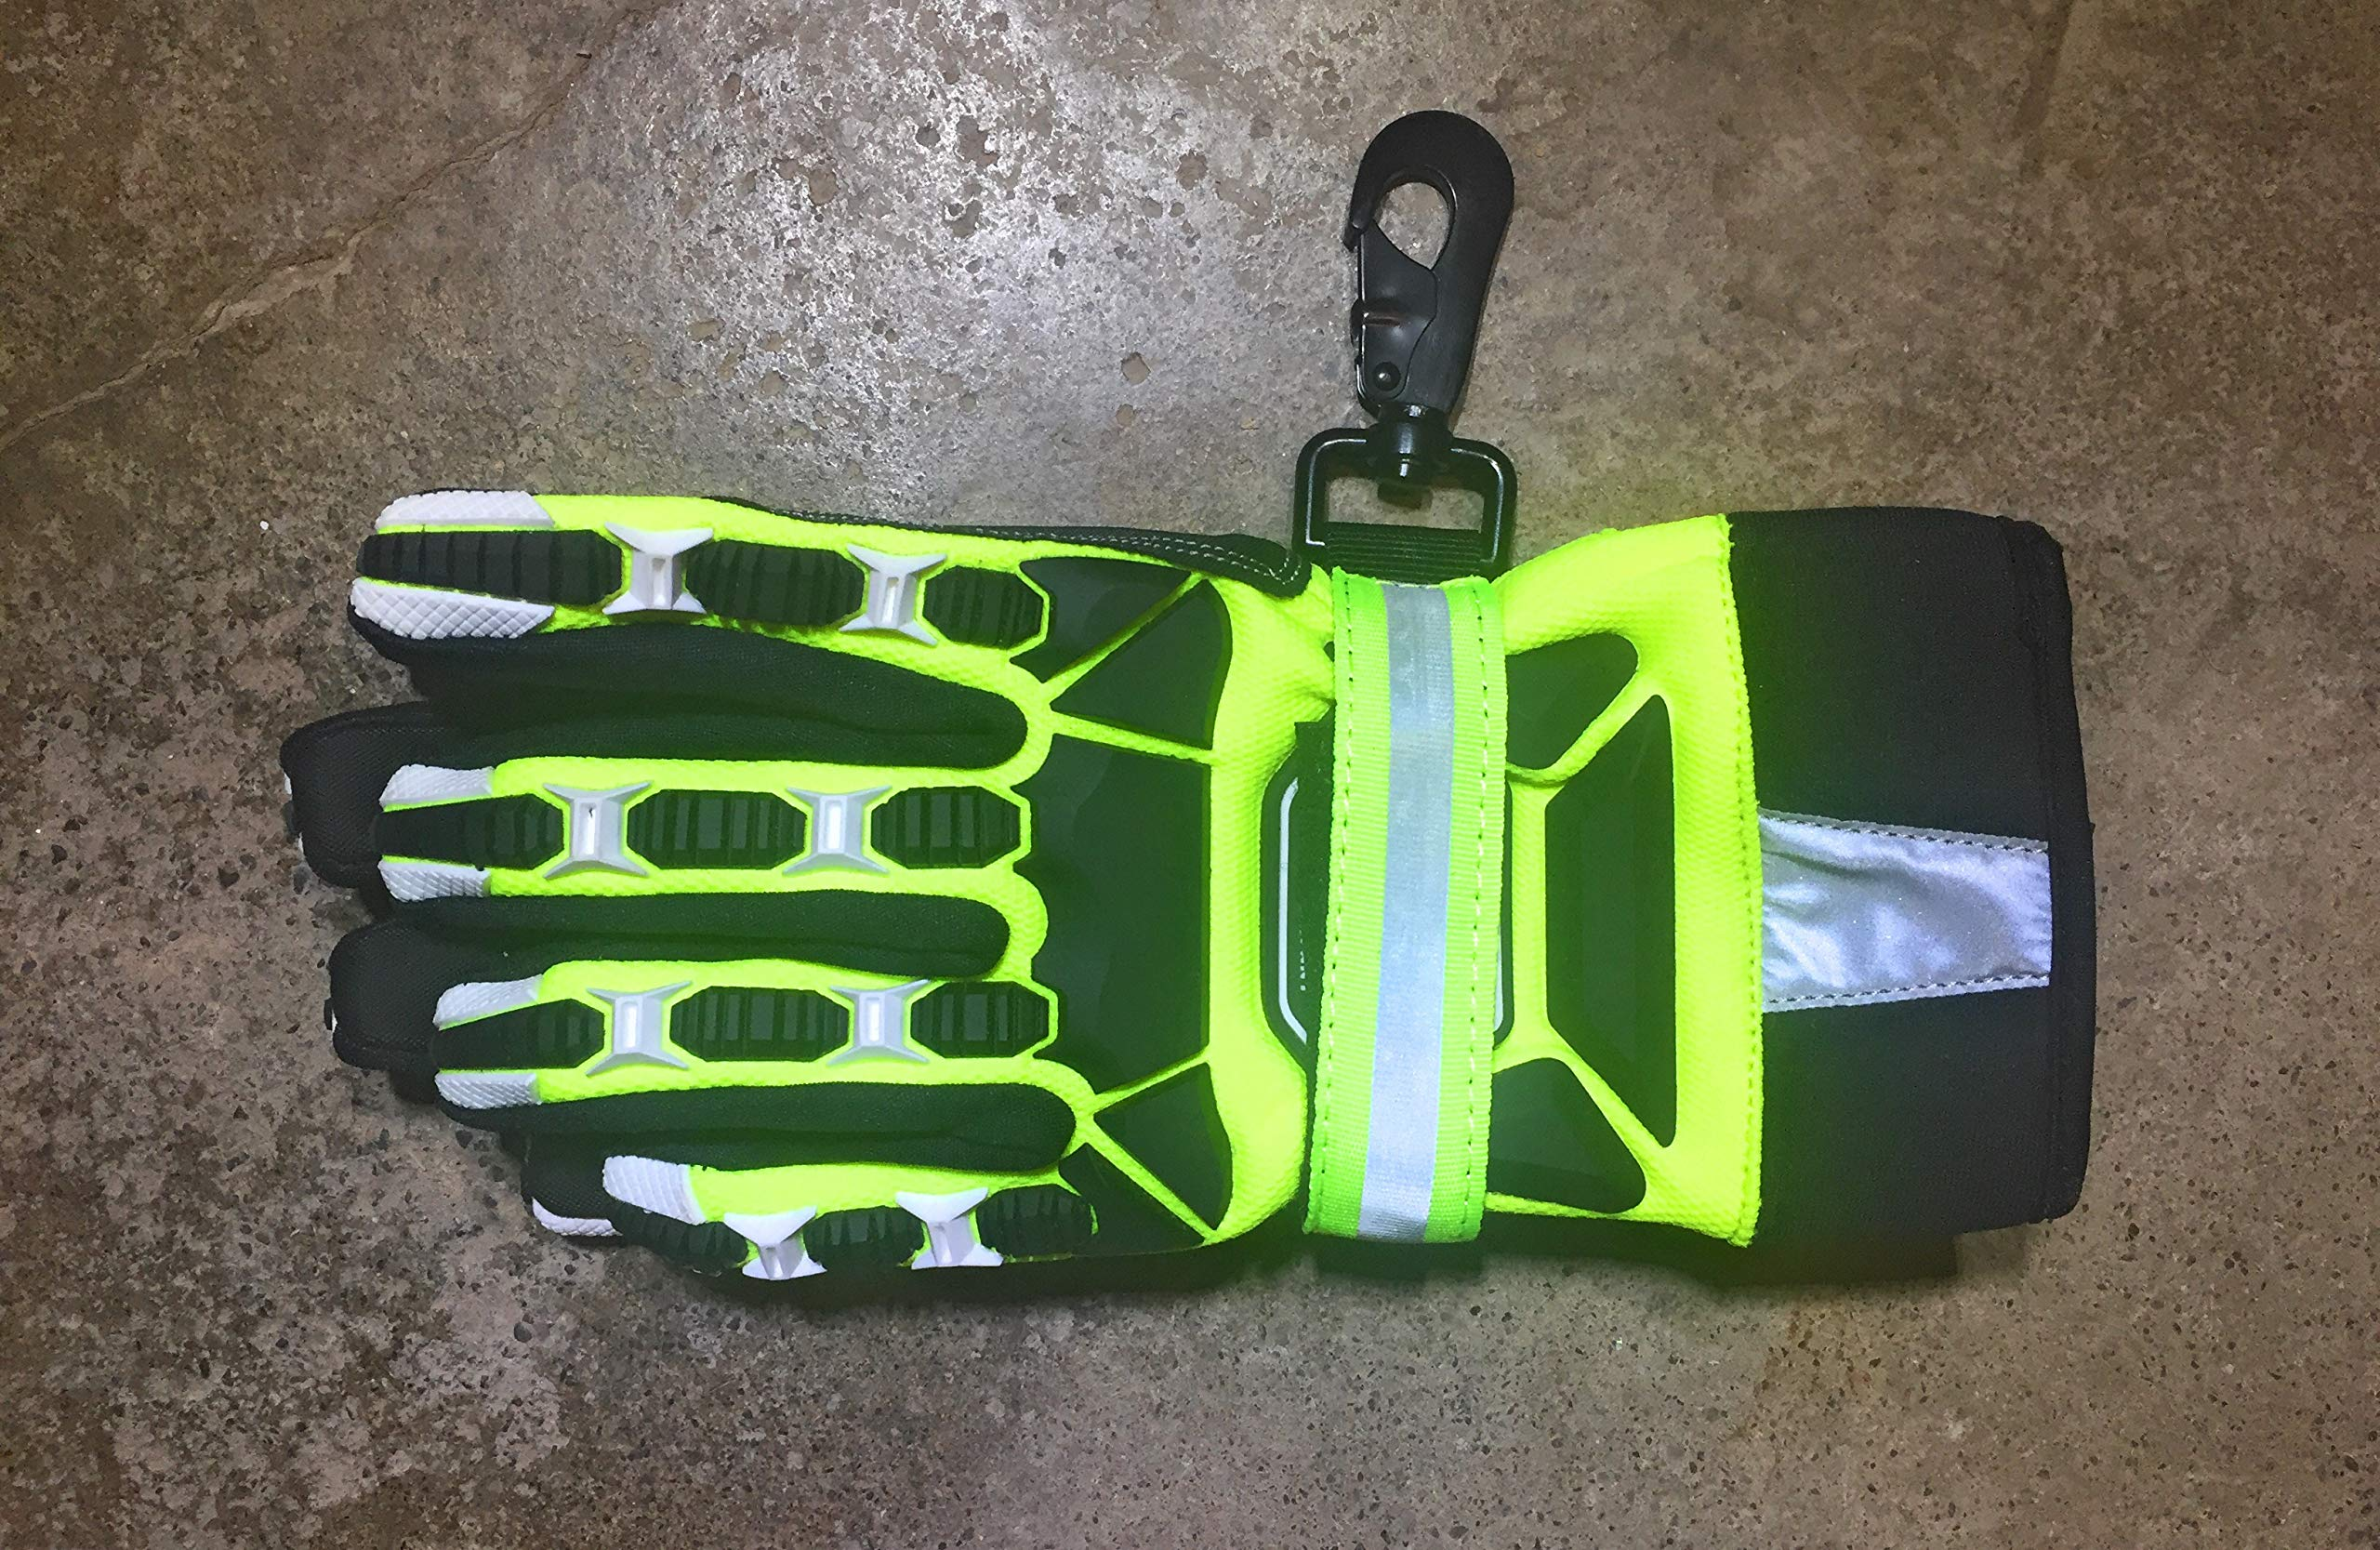 Cut Resistant Gloves Bundle - 1 - Firefighter Extrication Gloves (Large) | 1 - Glove Strap (lime Green) | 1 - Firefighter Journal (Track training hours, Run activities, work, ect.) by Generic (Image #7)